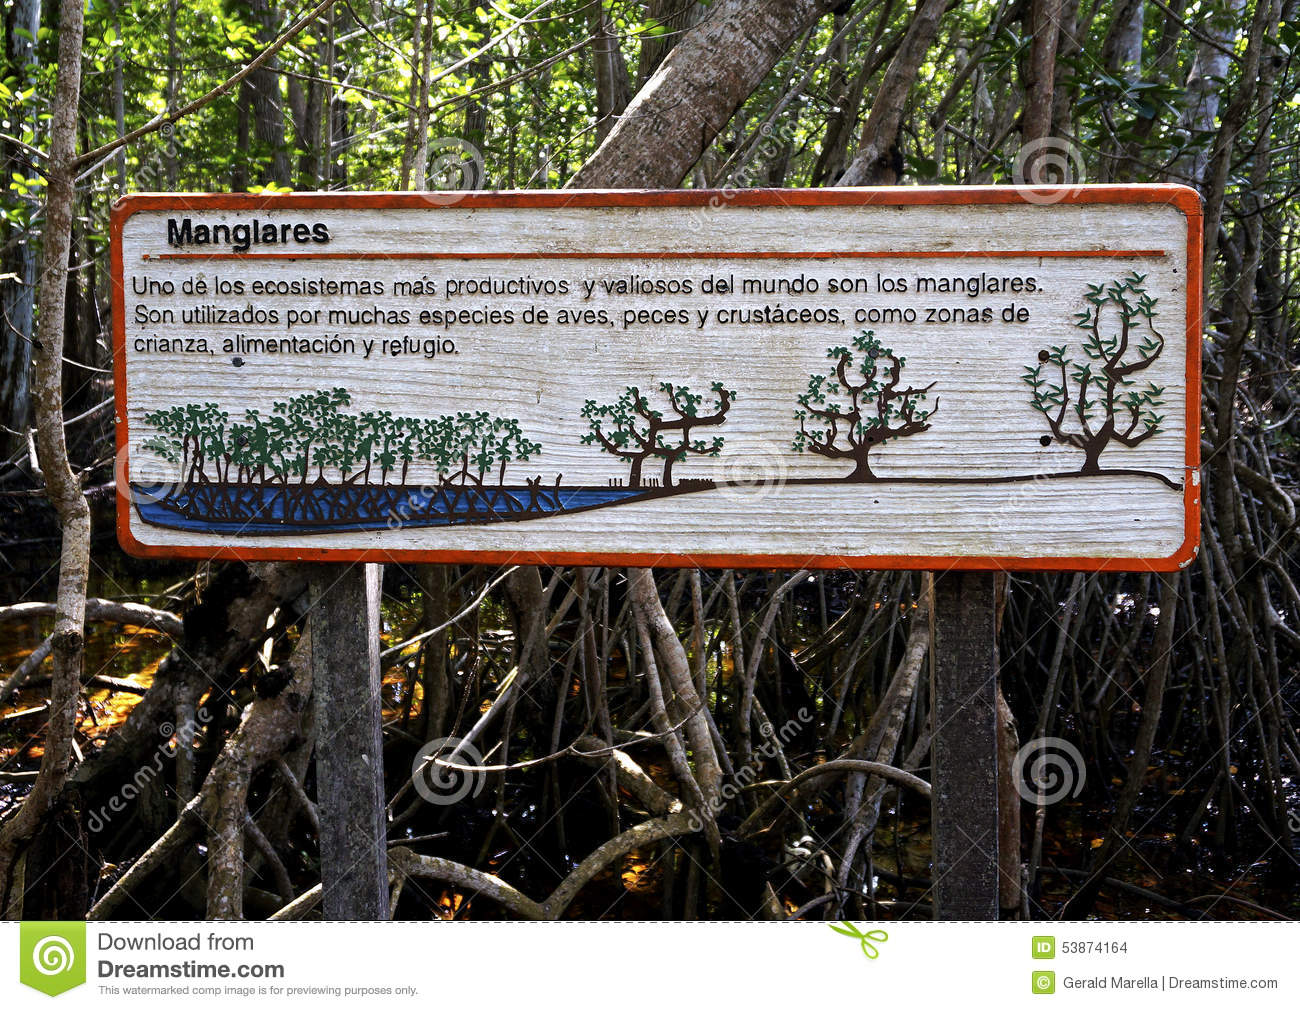 Under tort law, those who own land owe certain duties to people who might enter that land, even trespassers. Sign At A Protected Mangrove Forest Editorial Stock Image Image Of Swamp Protected 53874164